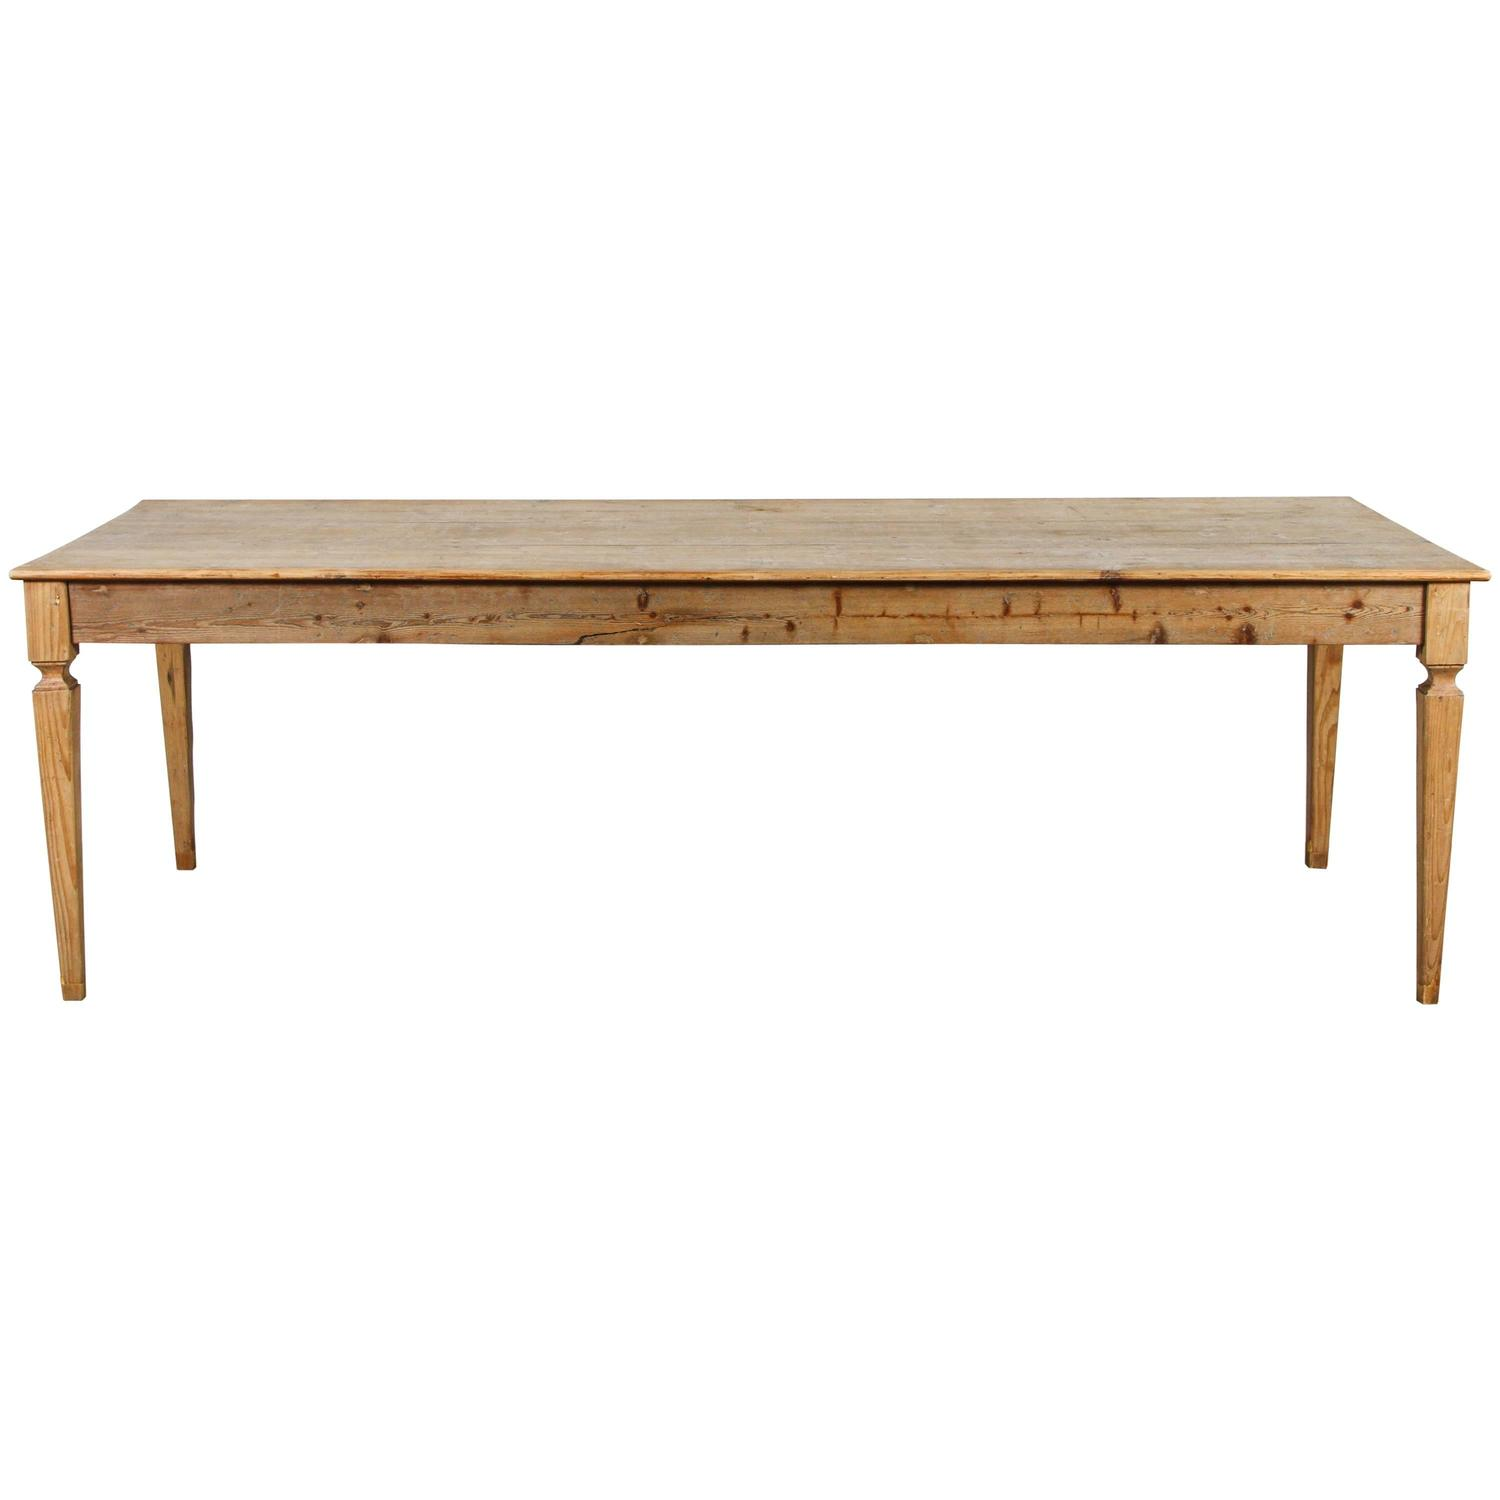 Rustic Italian Pine Farm Table For Sale at 1stdibs